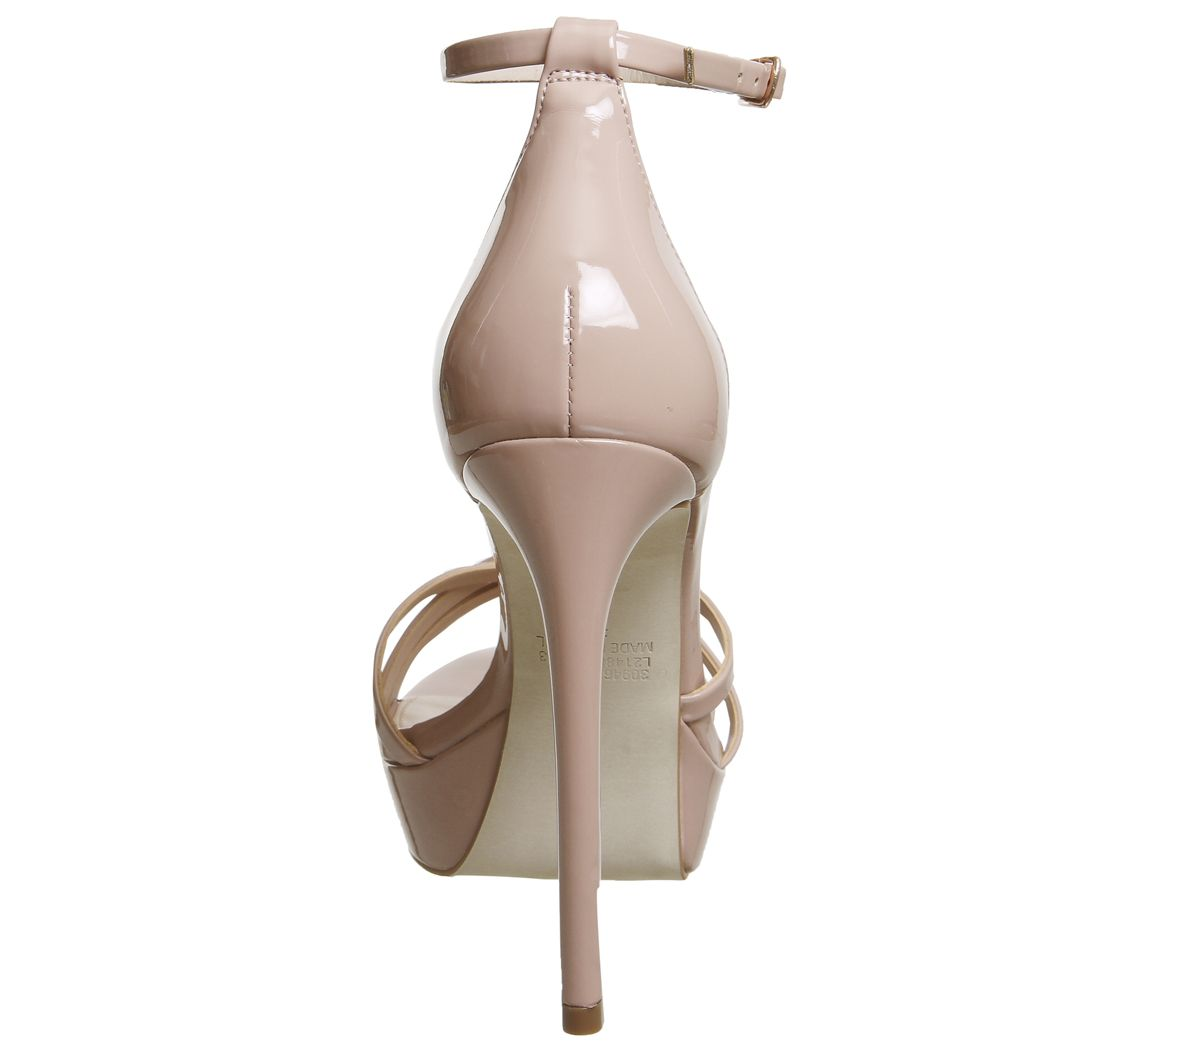 289f7859fc3 Womens Office Hey Day Platform Heel Sandals Nude Patent Leather ...